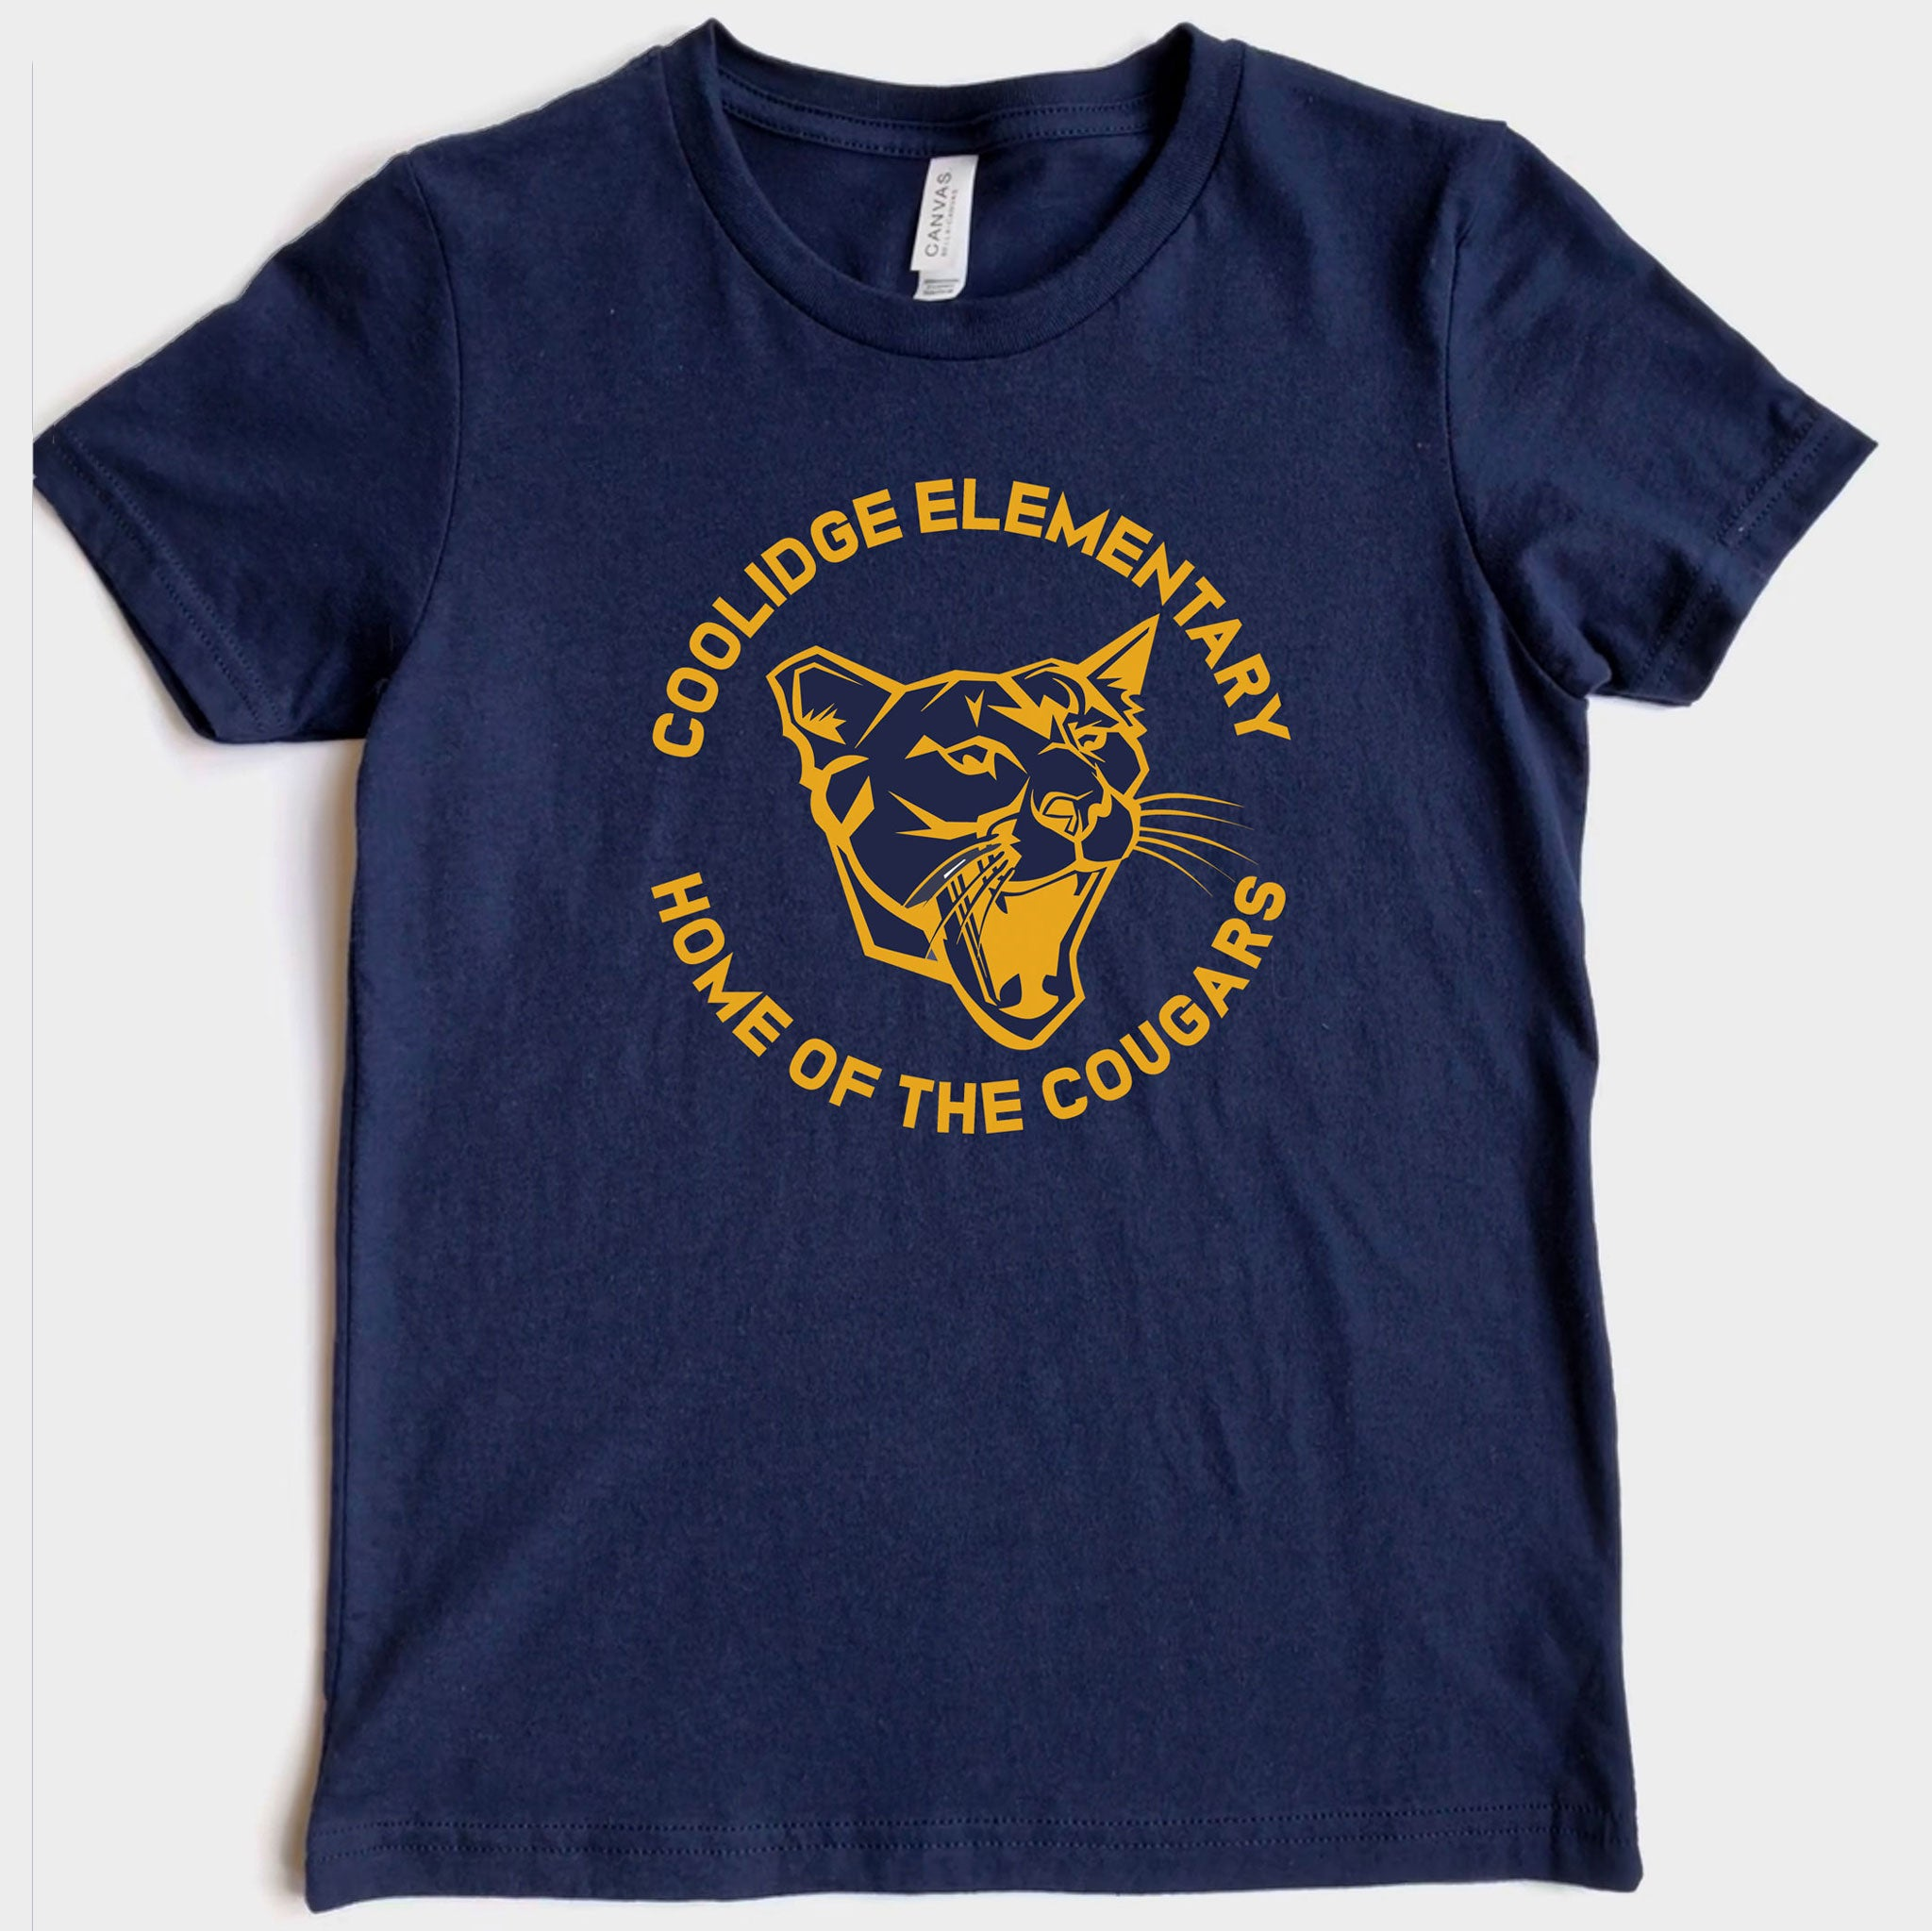 Coolidge Cougar Adult Tee - Yellow Design